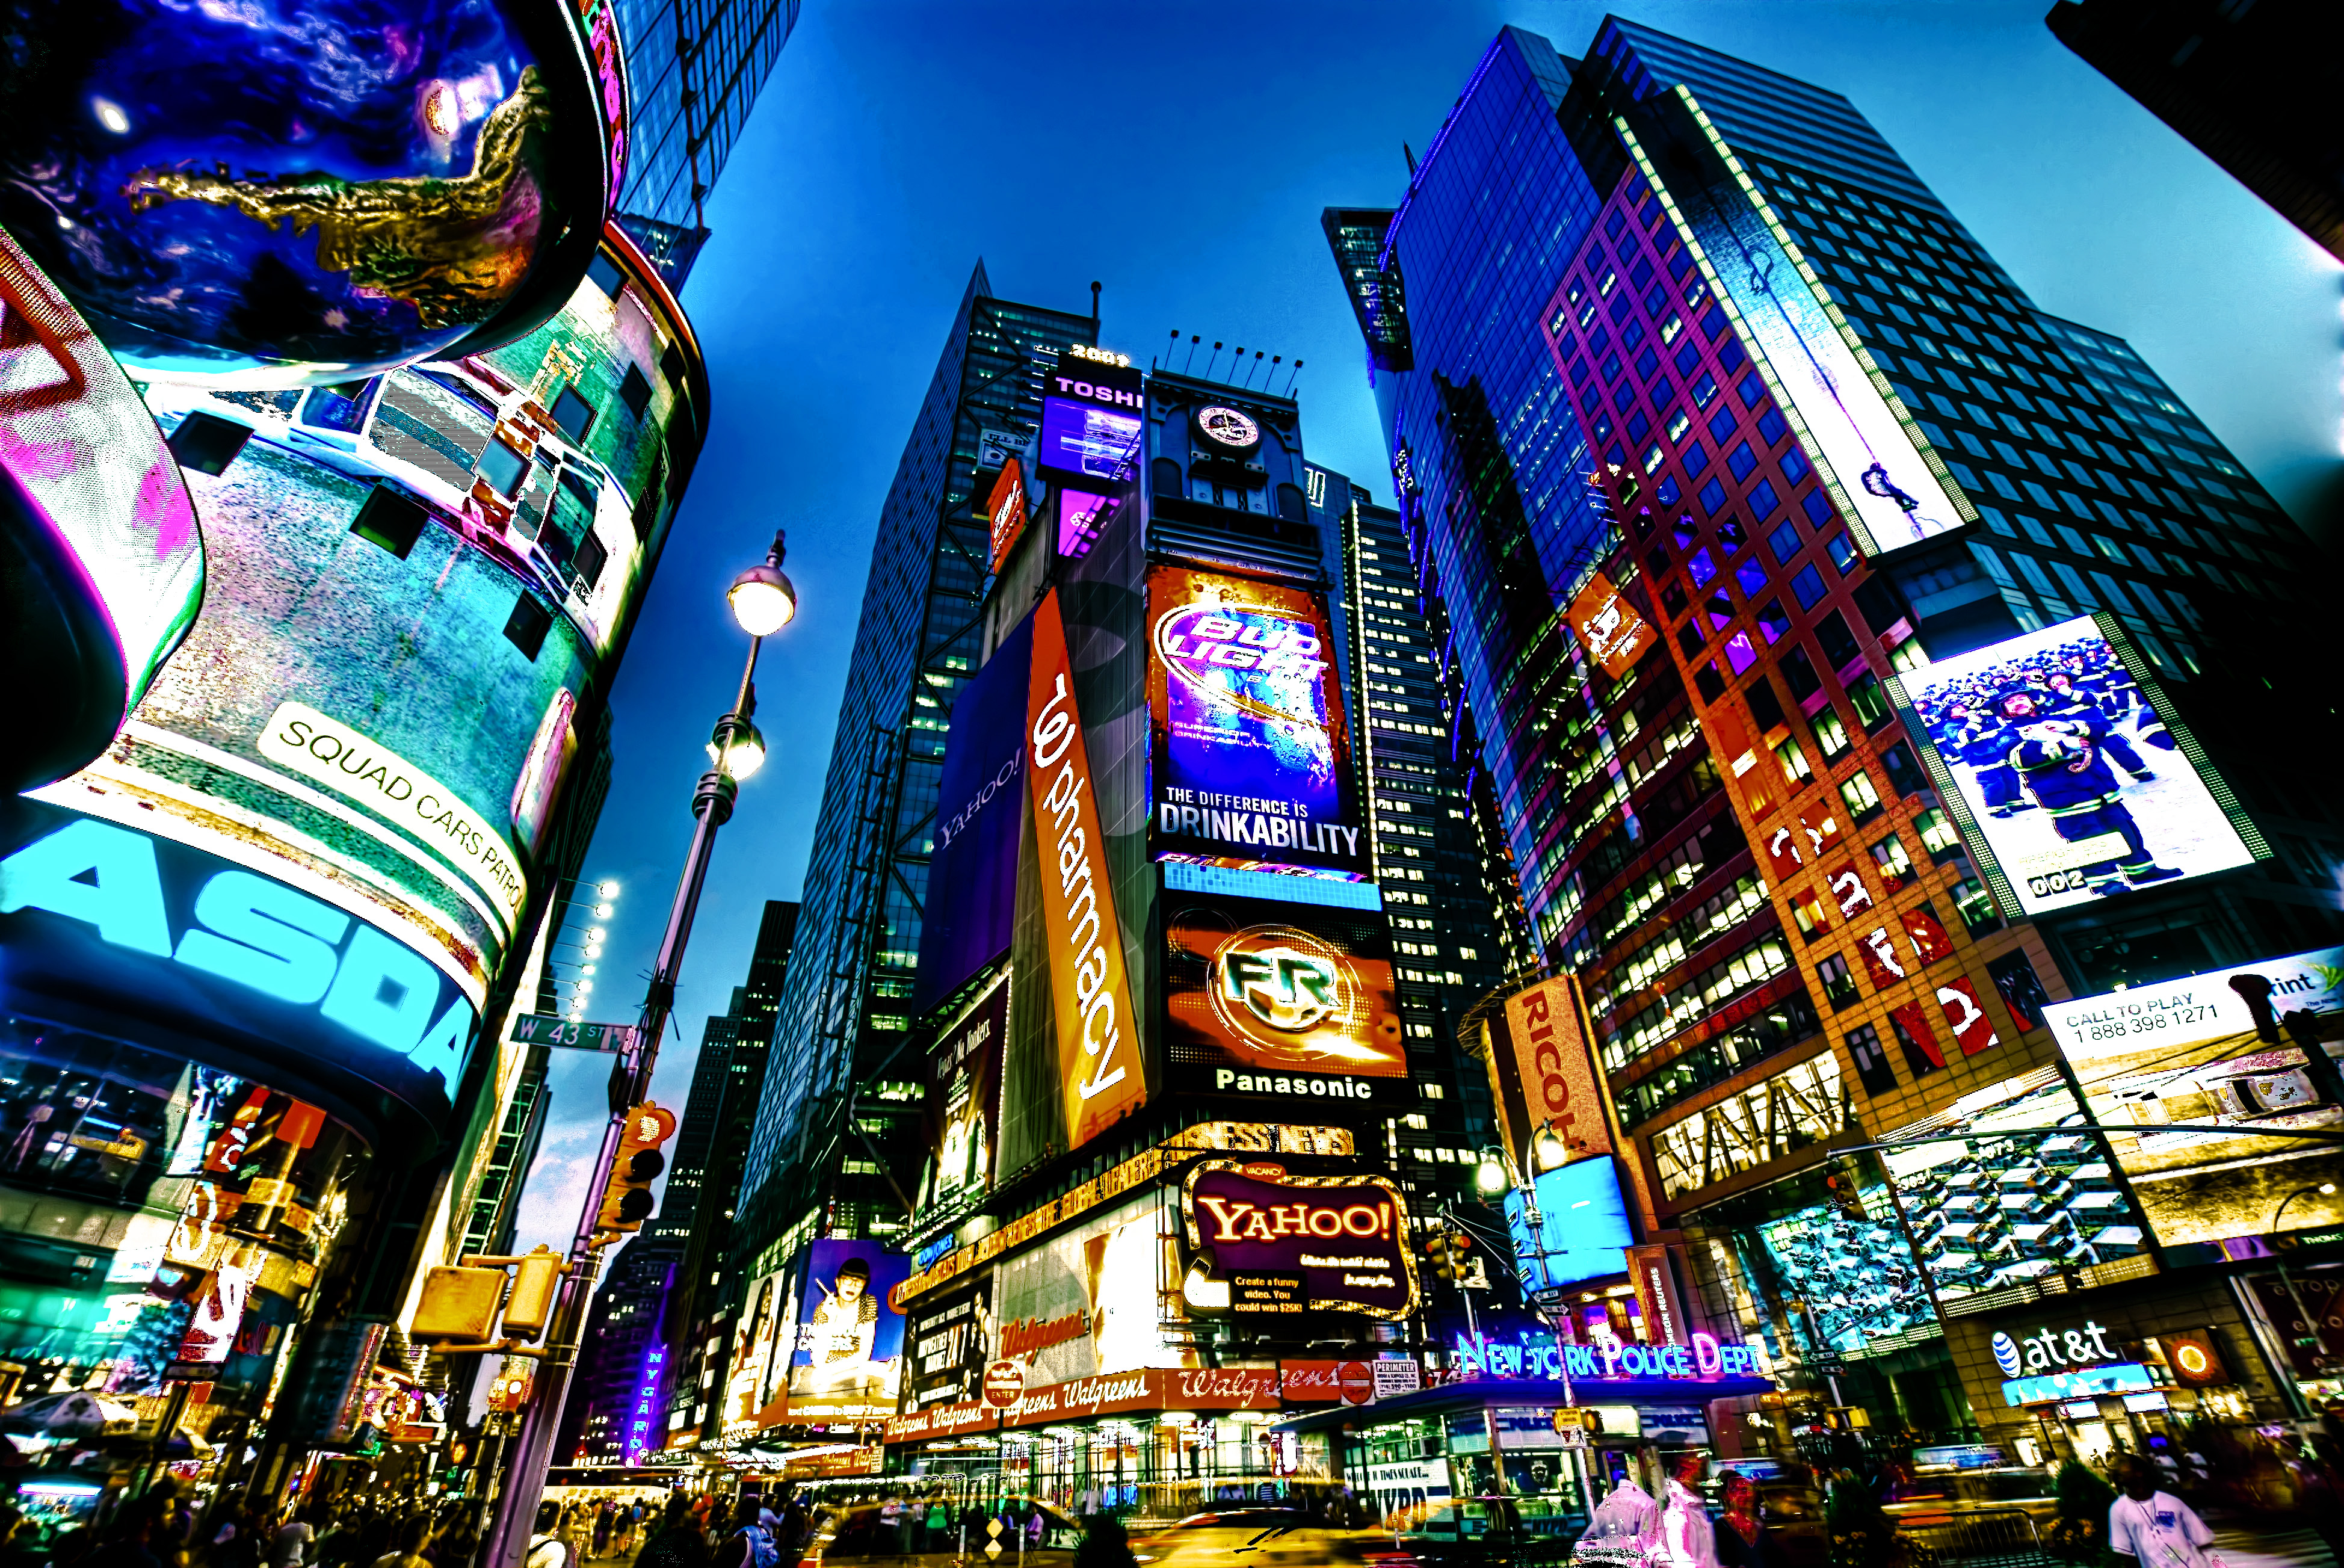 Times_Square,_New_York_City_(HDR) (1)